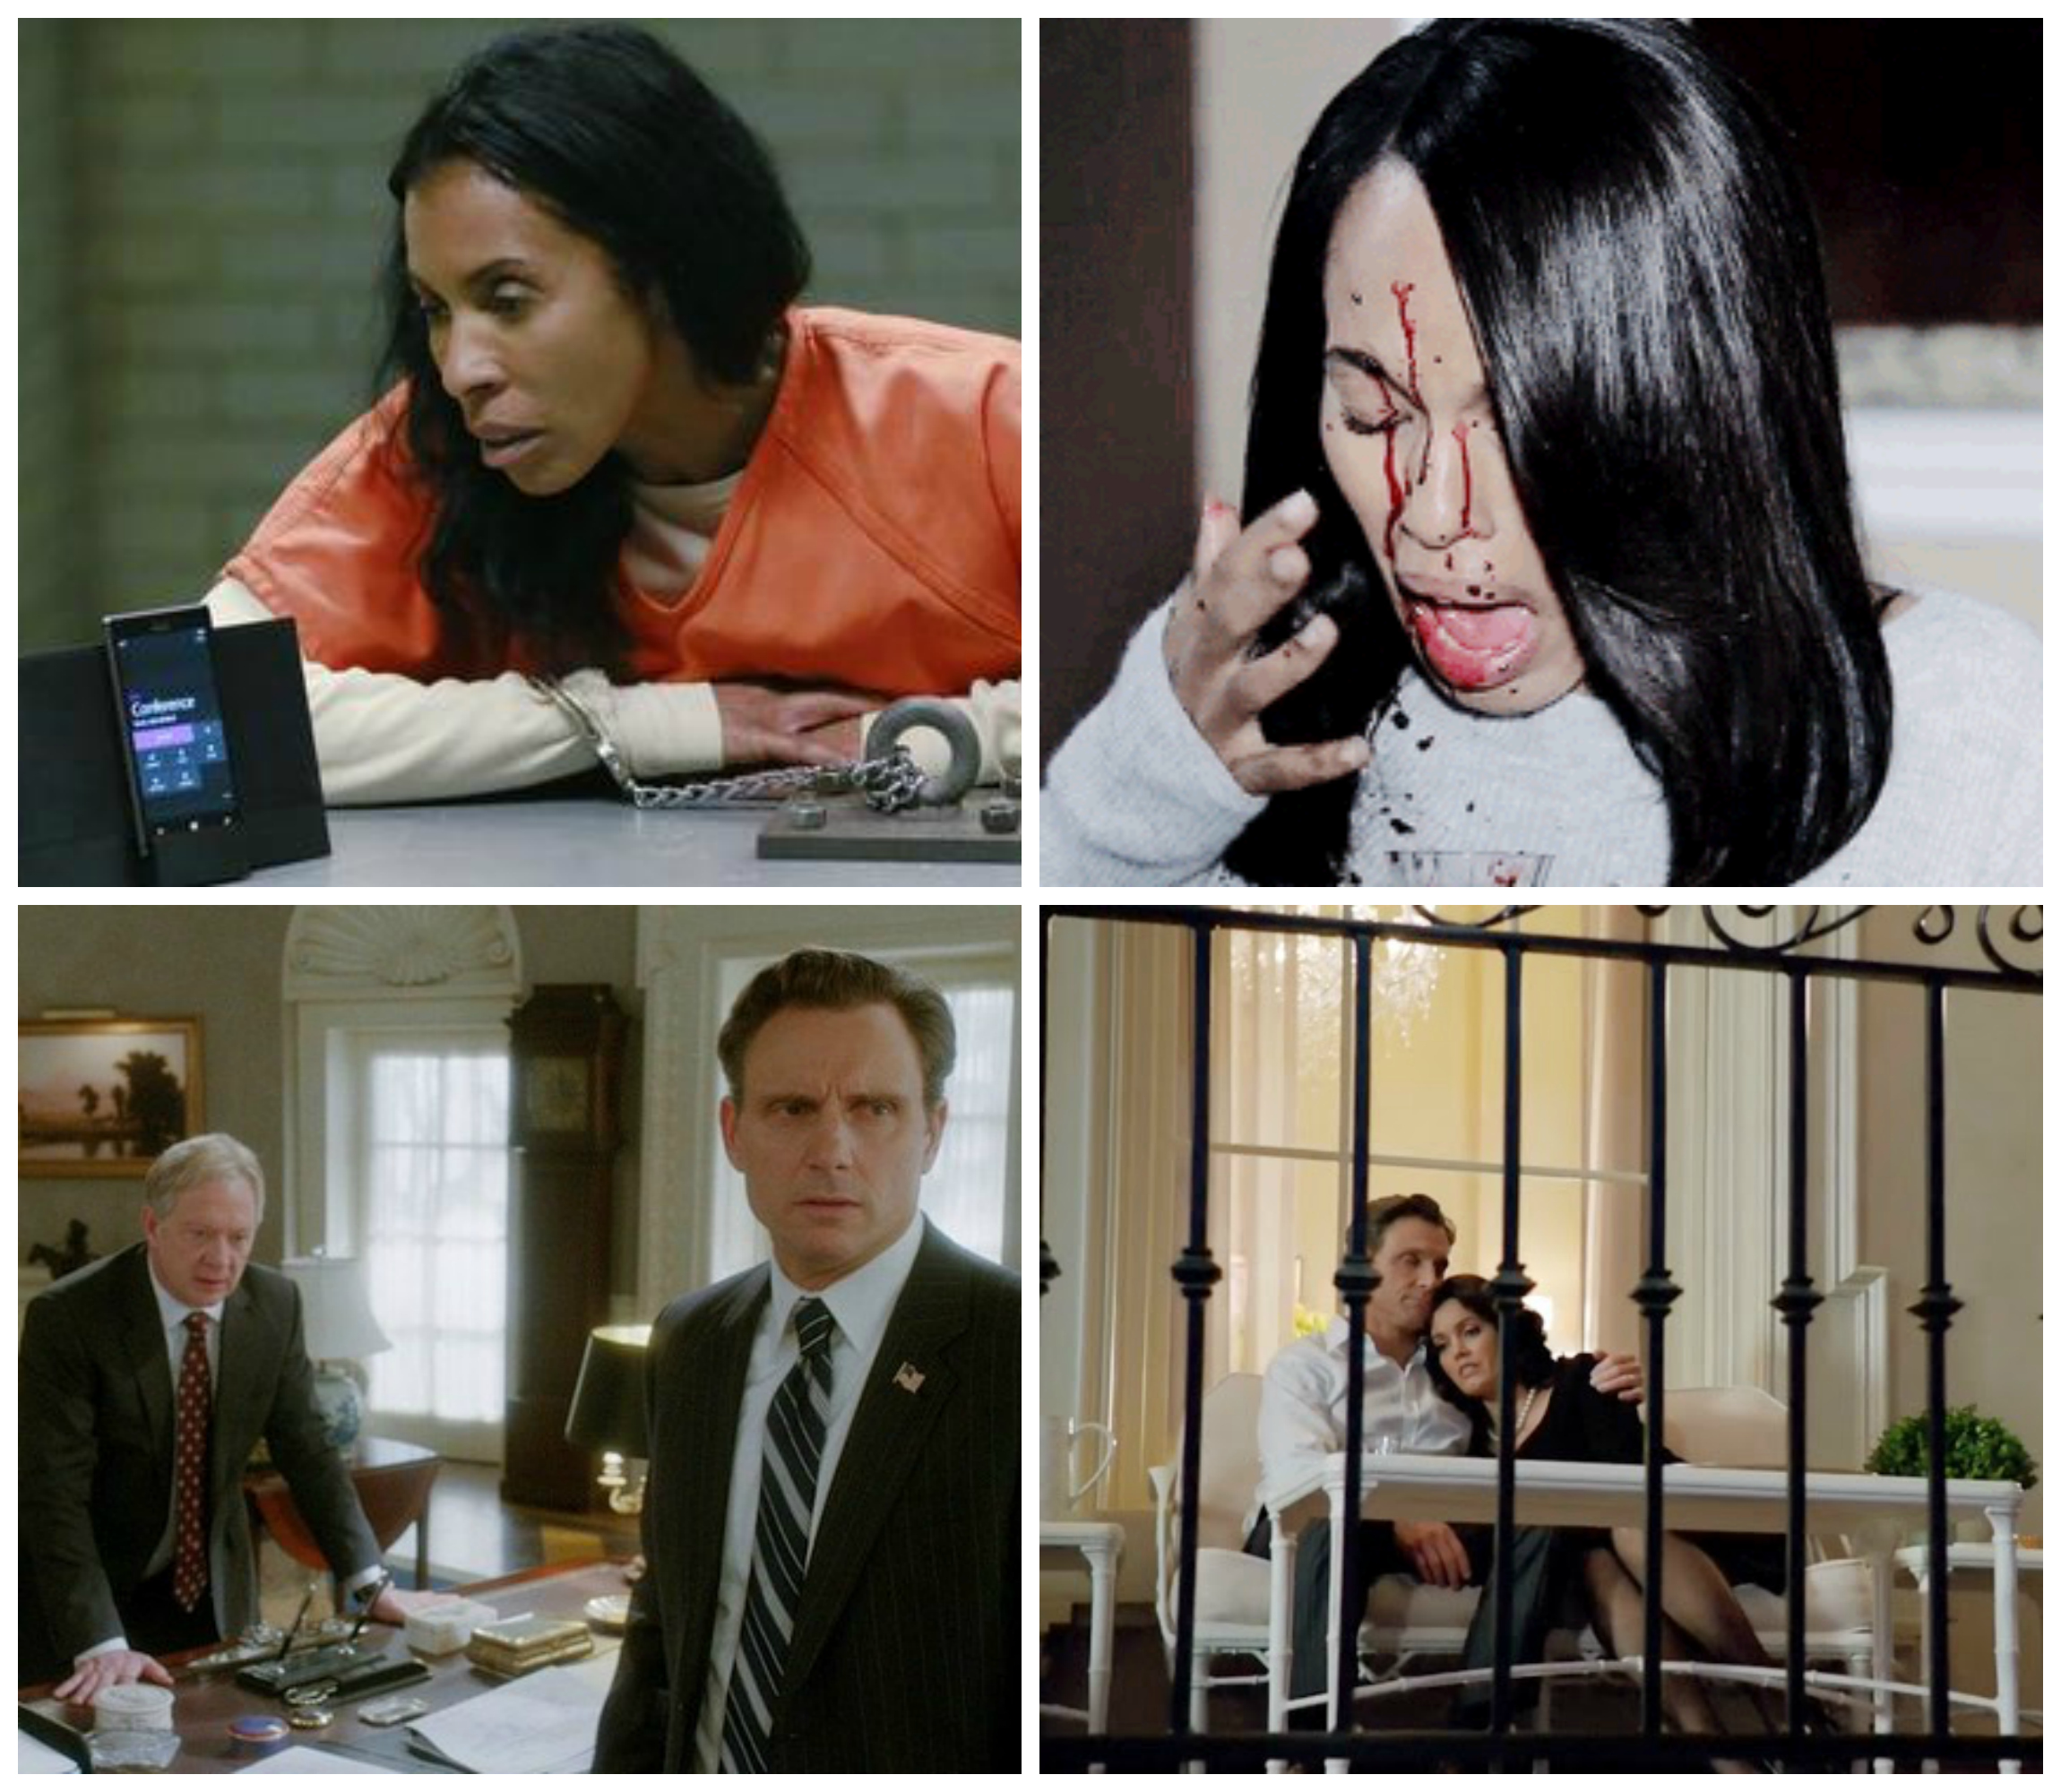 Episode 180: Scandal - S4E12 - 'Gladiators Don't Run'